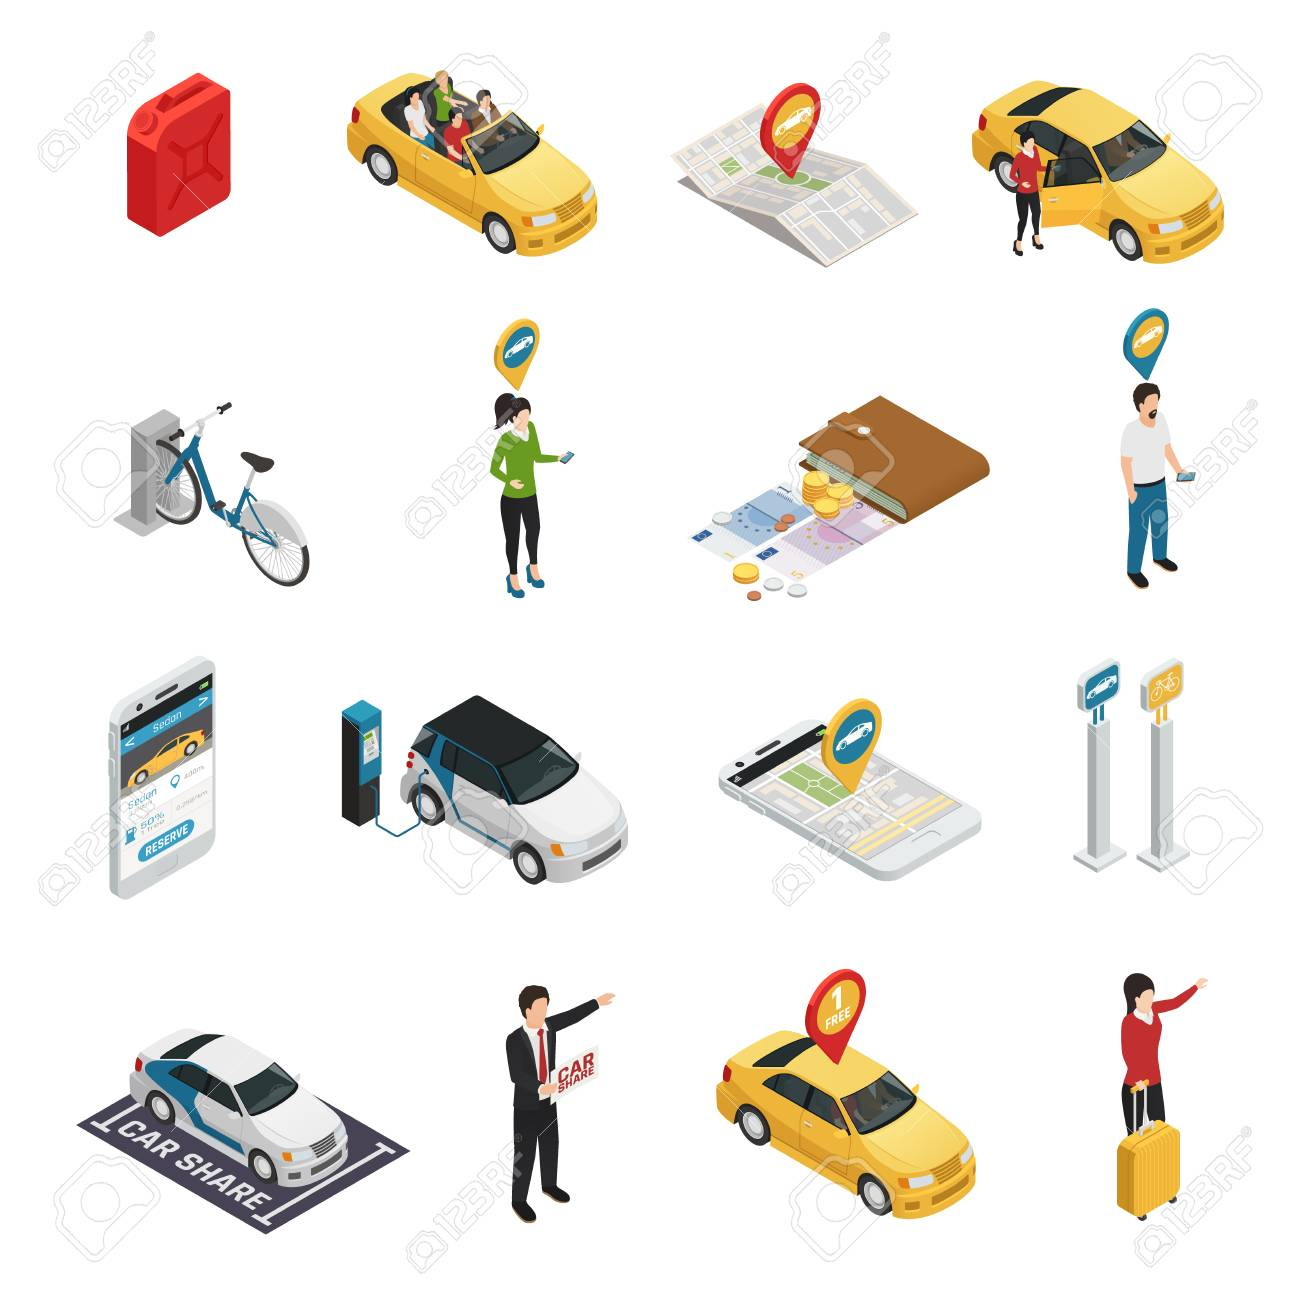 Carsharing carpooling ridesharing isometric icons with people using individual and collective reservation of cars via web application isolated vector illustration - 88167101